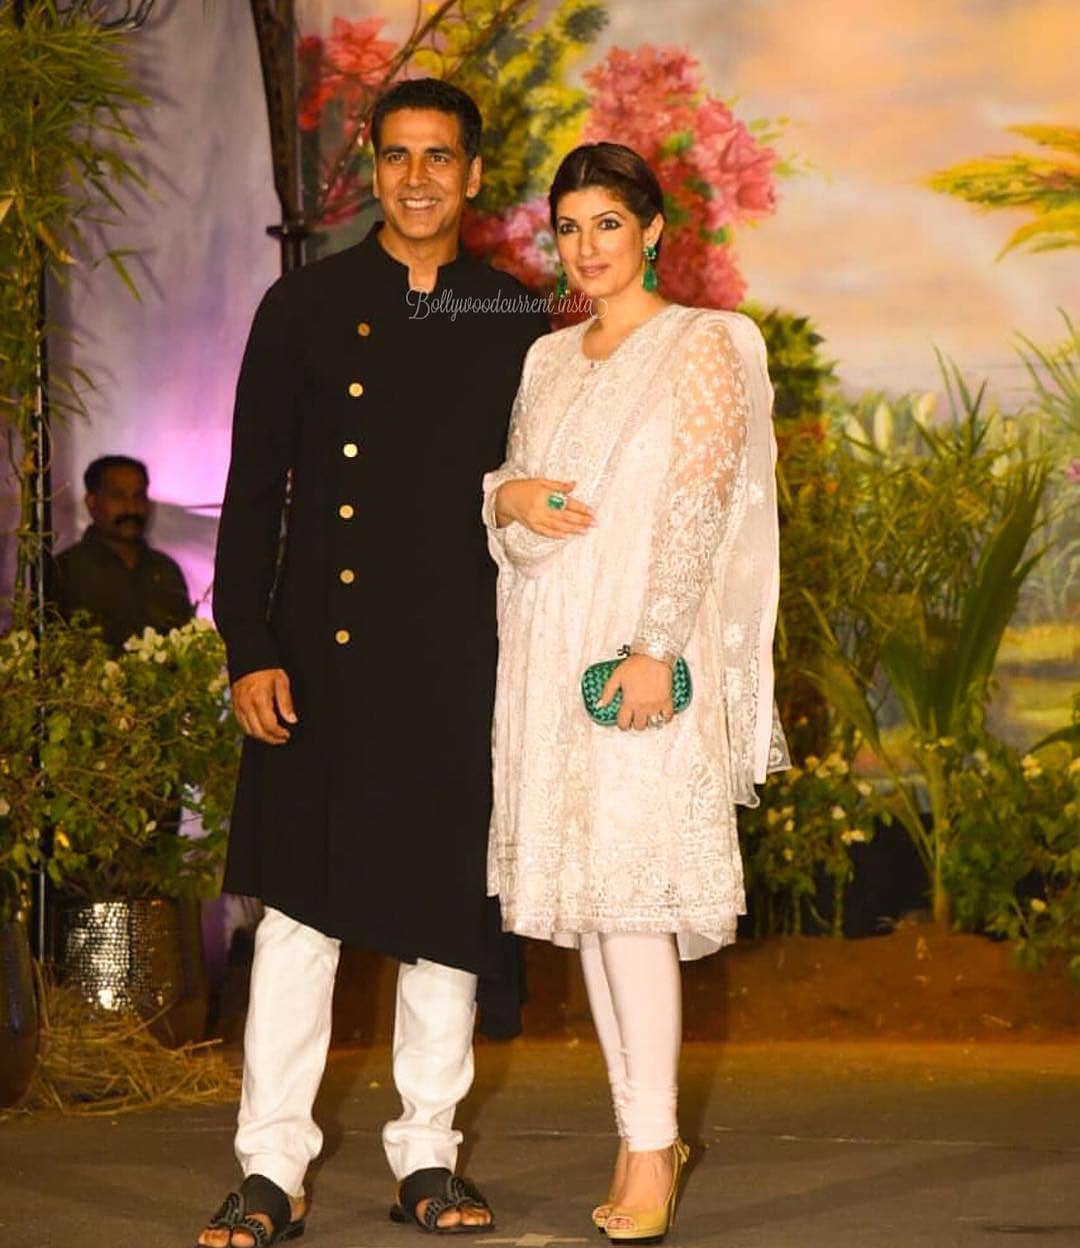 14-2 Sonam Kapoor Wedding Pics - Engagement and Complete Wedding Pictures